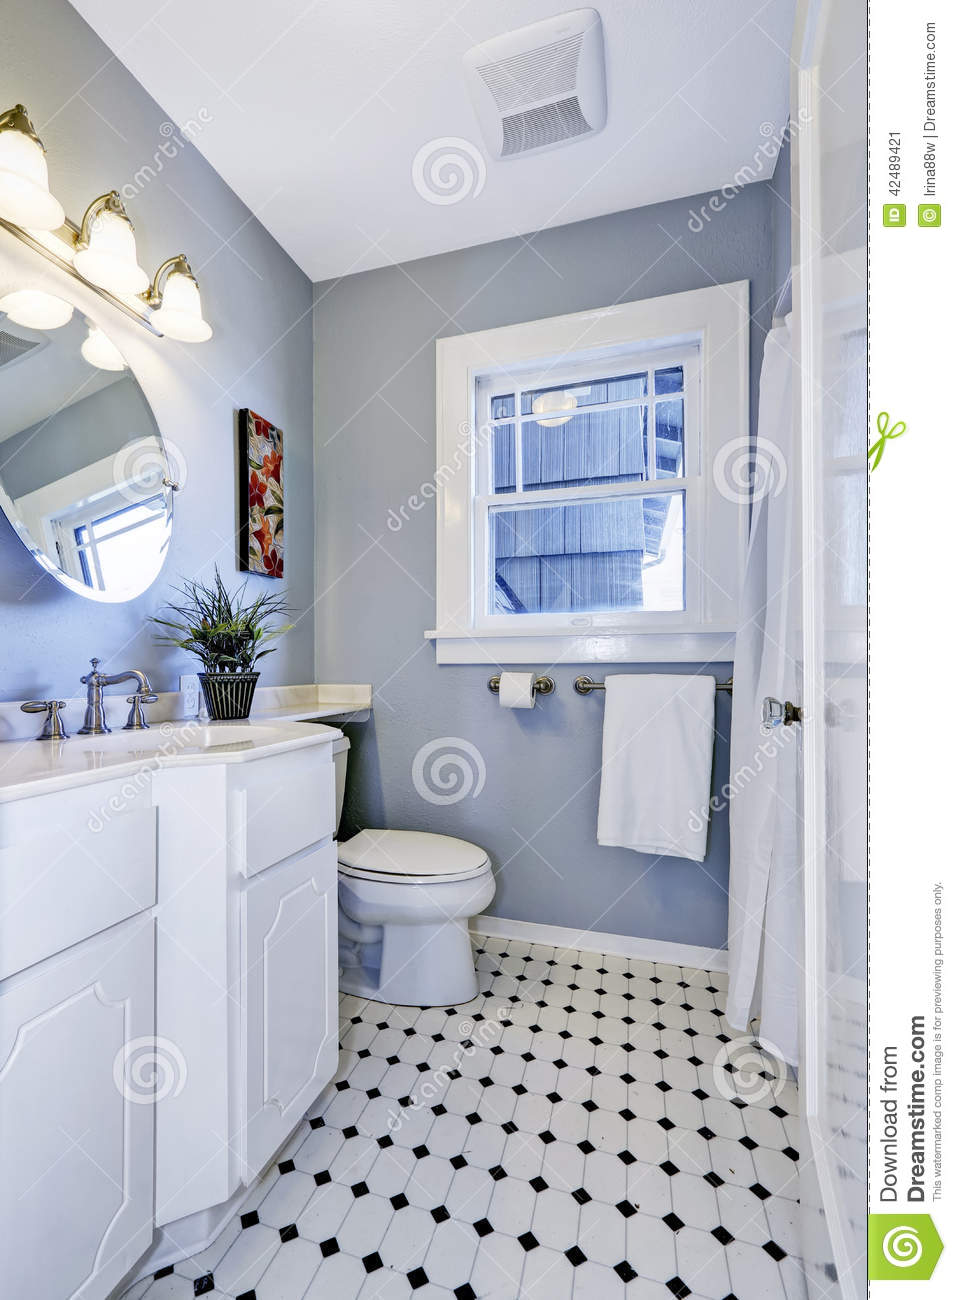 Light blue and white bathroom - Bright Bathroom Interior In Light Blue Color